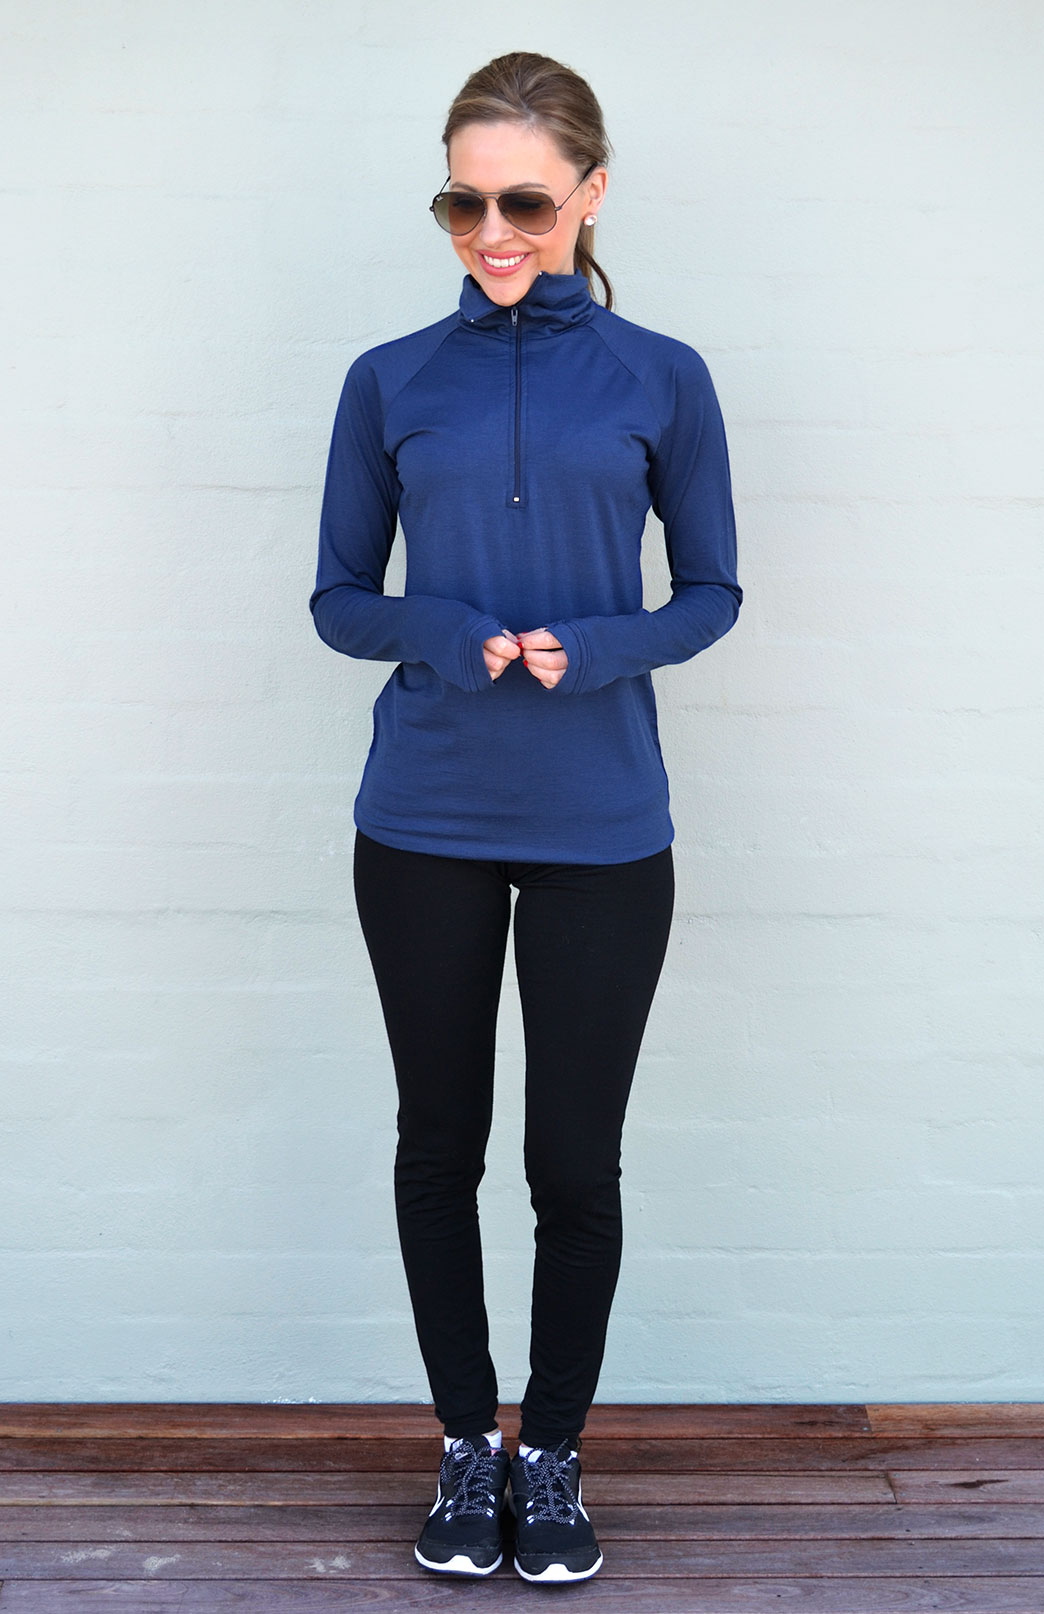 Zip Neck Top - Midweight (200g) - Women's Indigo Blue Zip Neck Pull Over Style Top with thumb holes - Smitten Merino Tasmania Australia